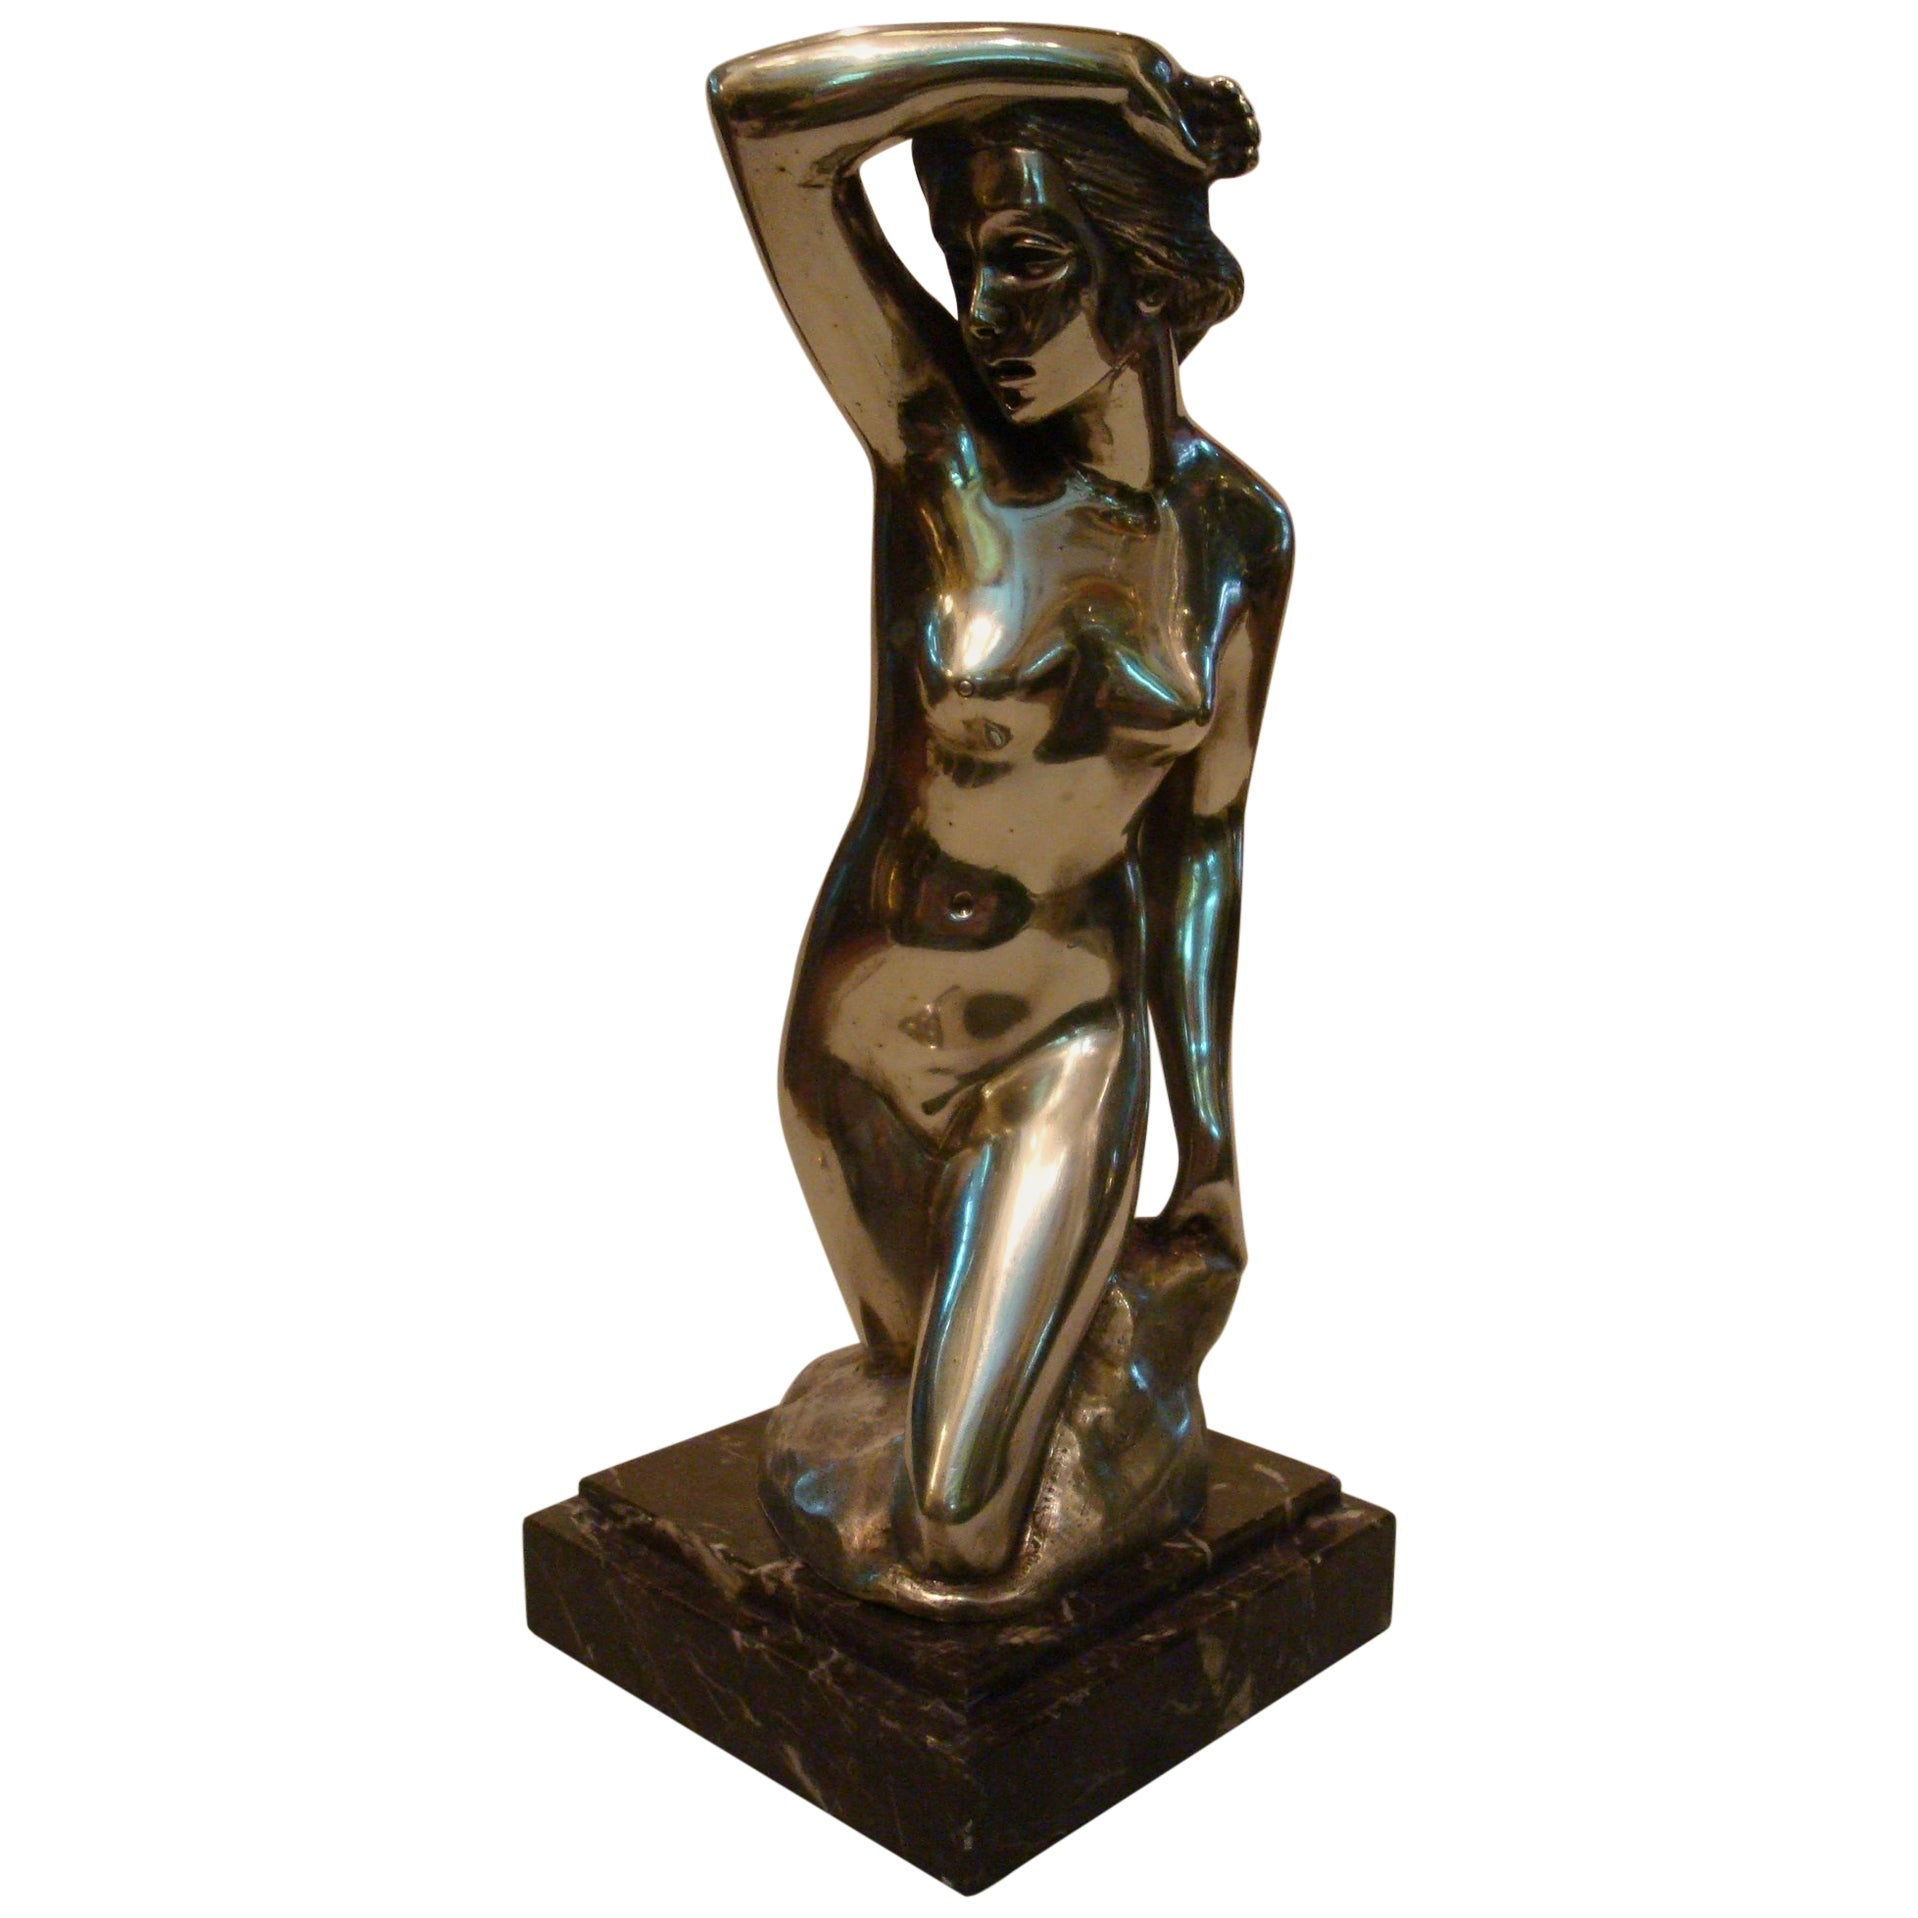 Art Deco Nude Woman Bronze Sculpture